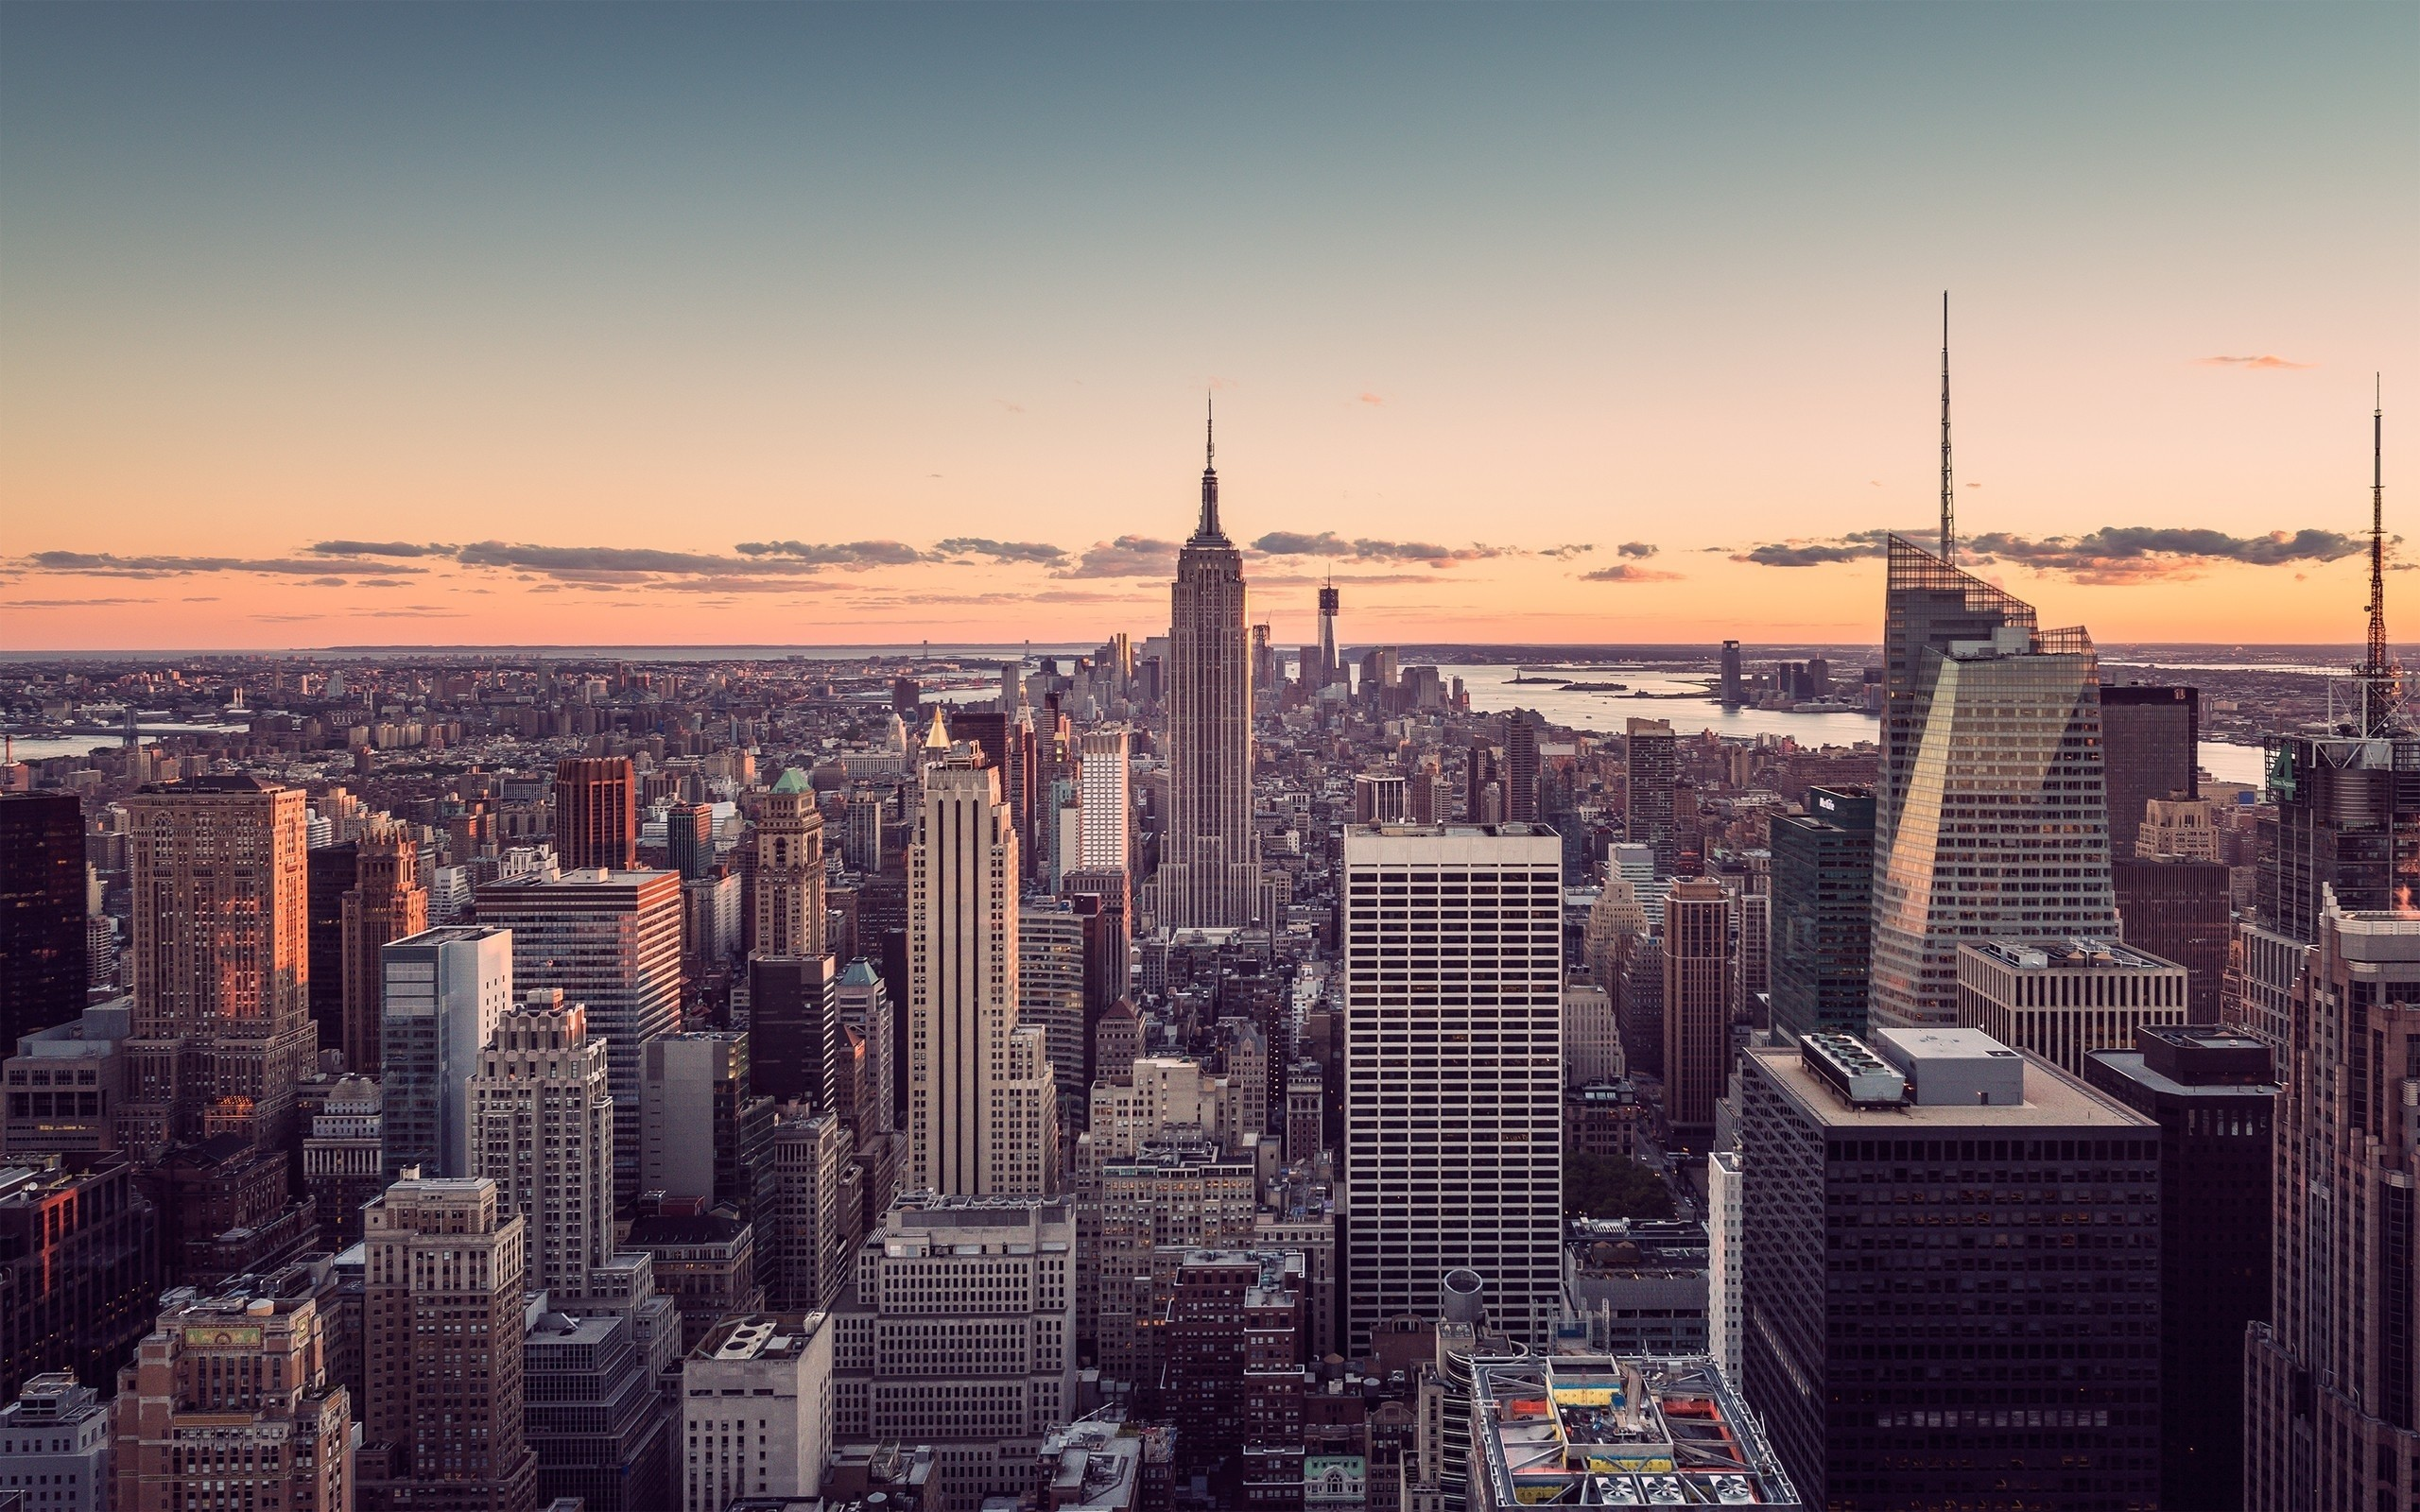 2560x1600 Download New York Wallpaper For Phone Gallery New York City 2560x1600 Wallpaper Teahub Io